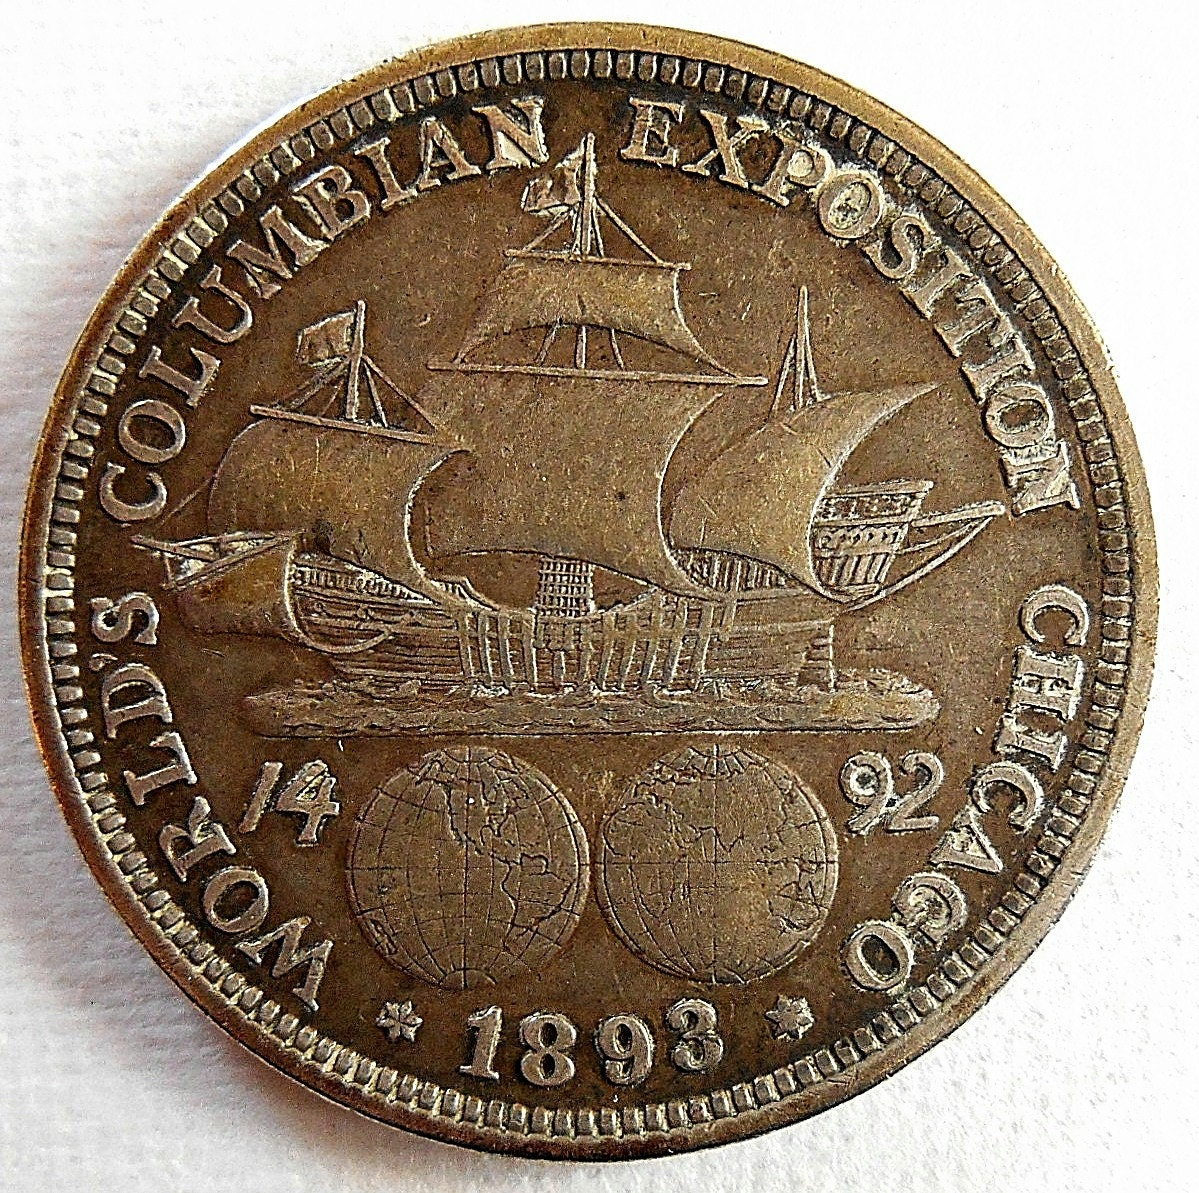 worlds columbian exposition chicago 1893 coin